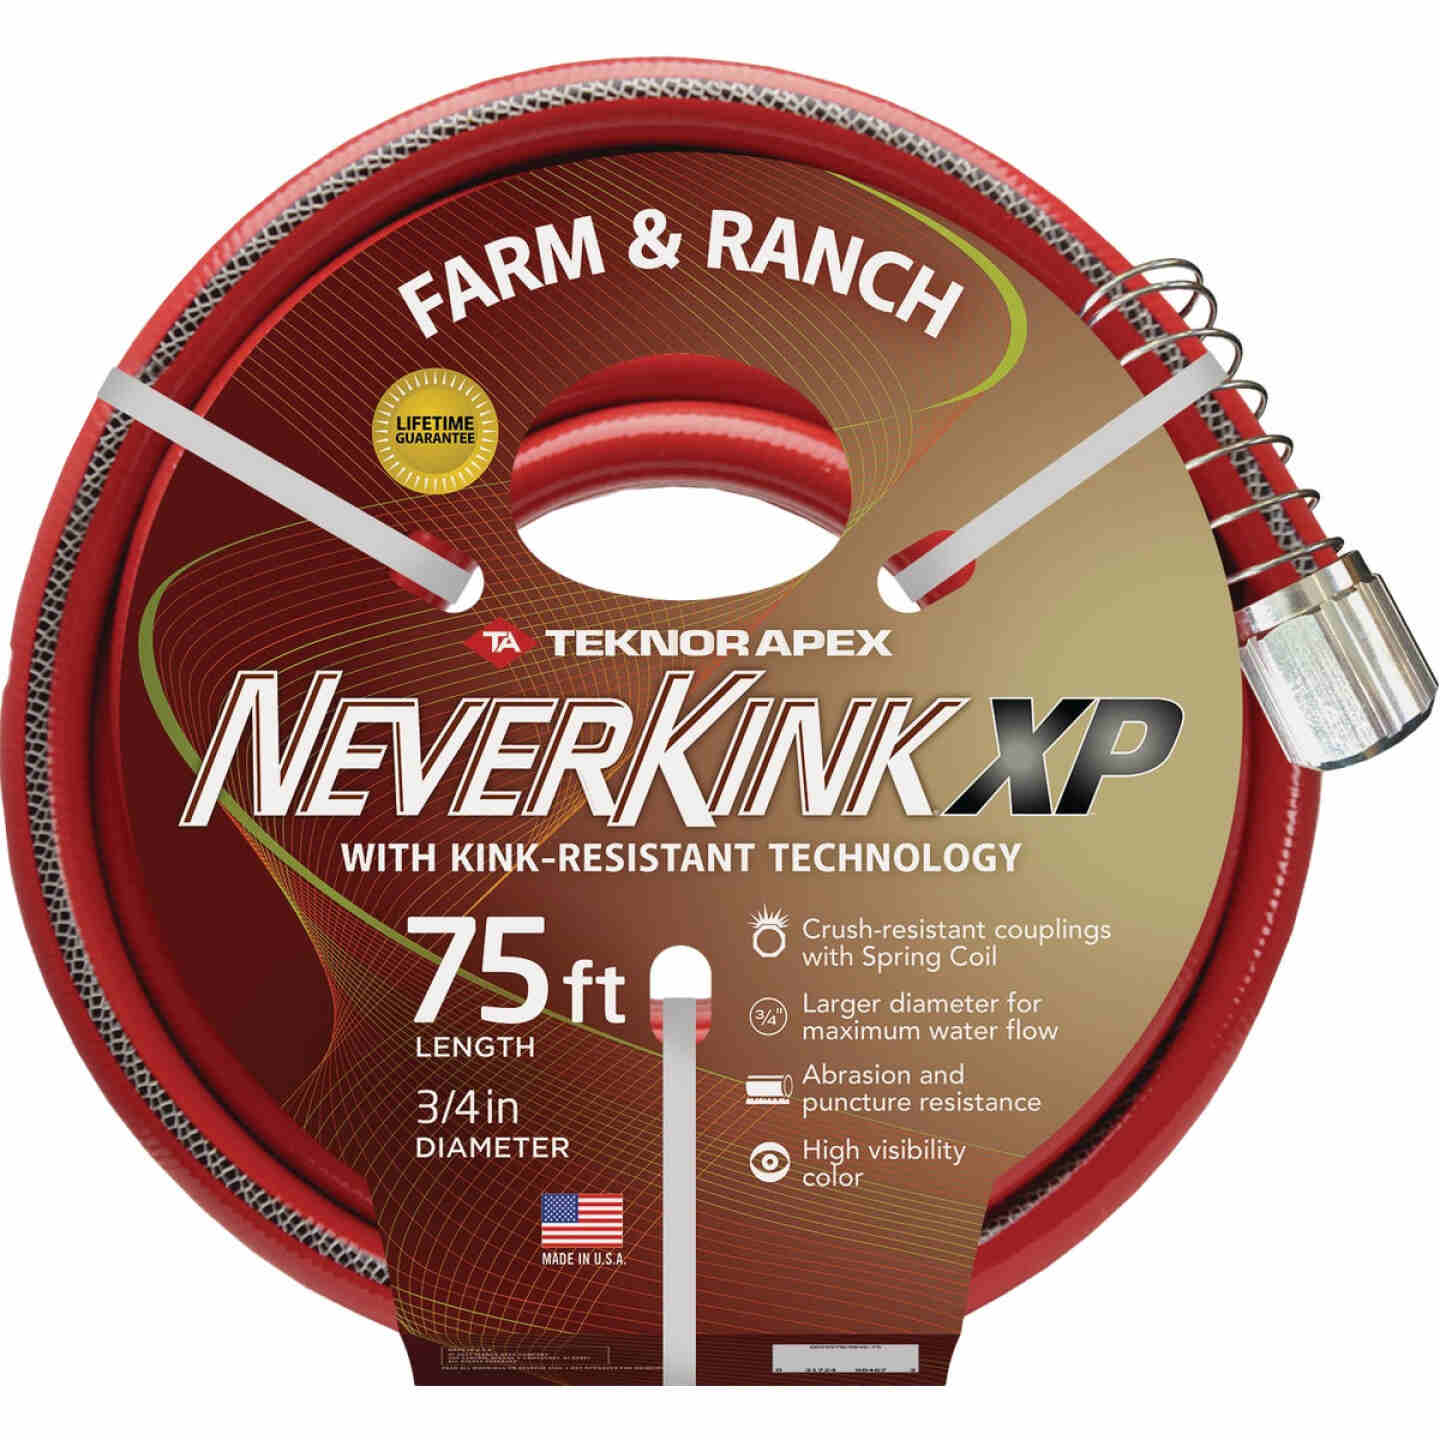 NeverKink XP 3/4 In. x 75 Ft. Farm & Ranch Hose Image 1